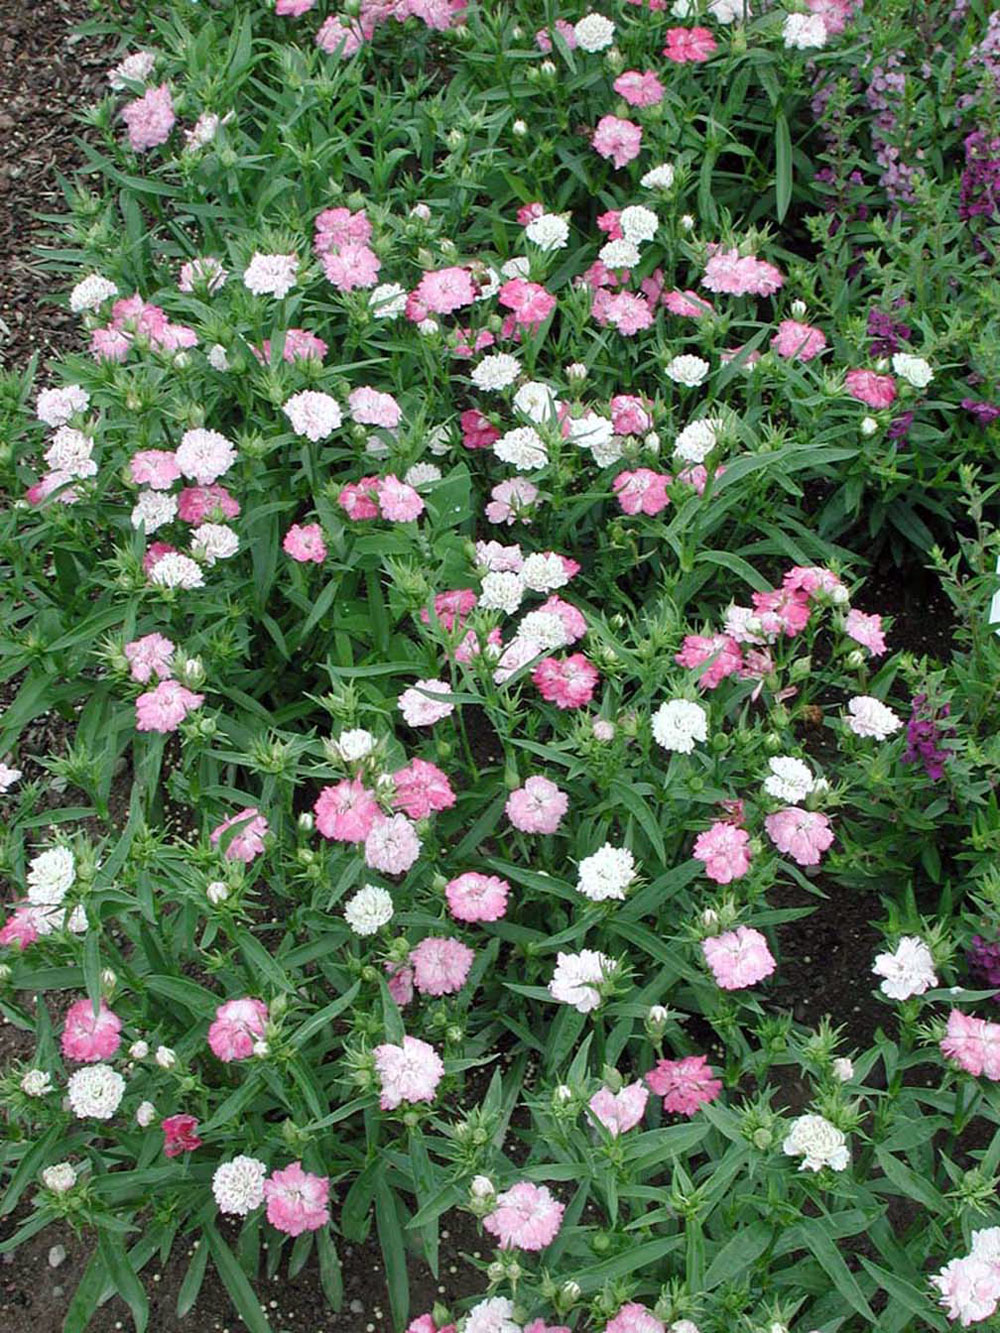 Dianthus Dynasty Pink Magic Annual Flower Research At Bluegrass Lane